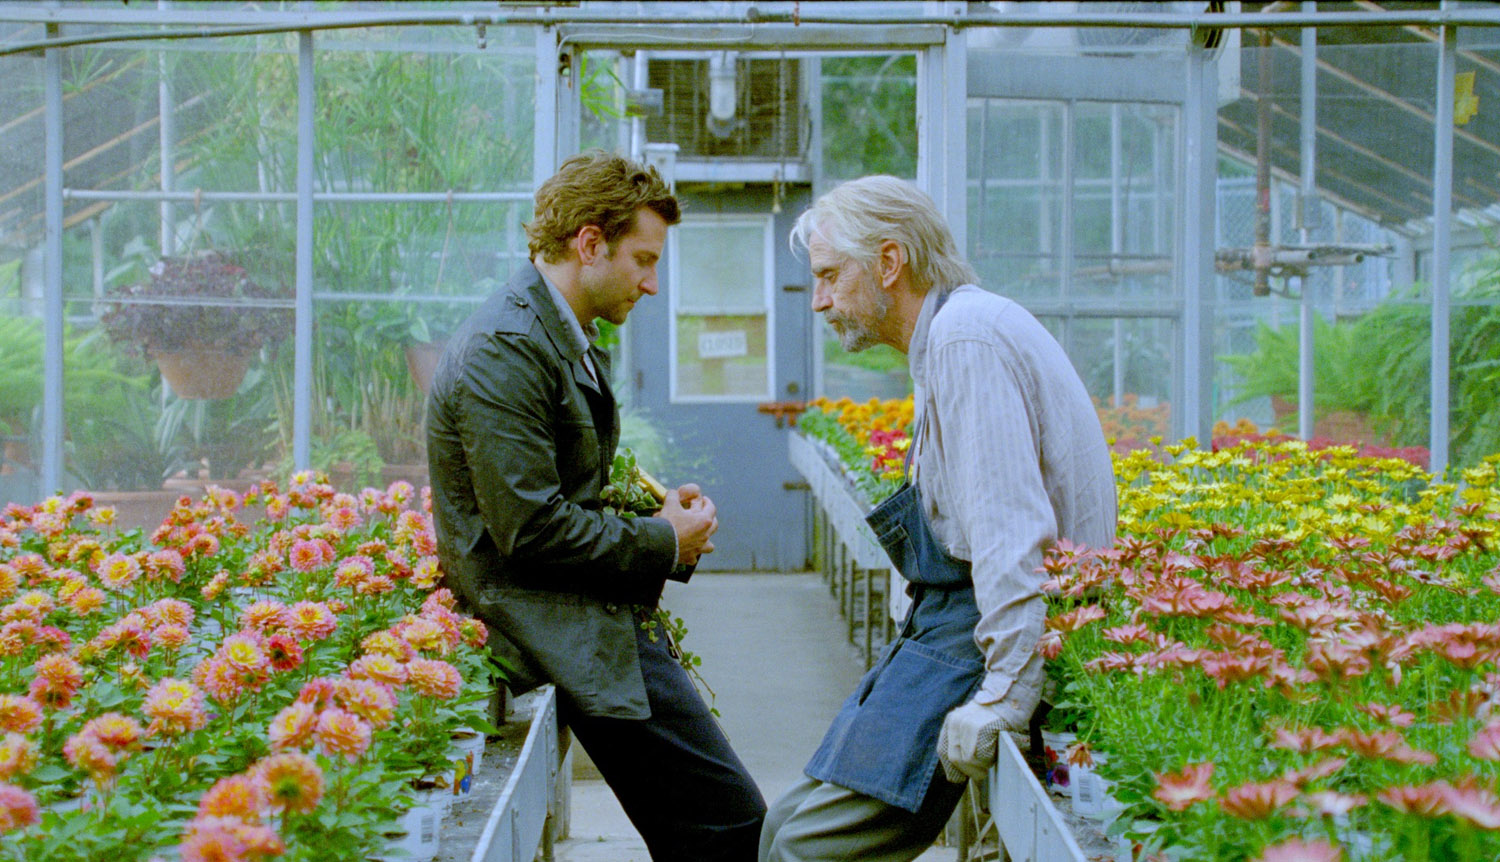 http://1.bp.blogspot.com/-iM4L9HrZsmU/UKo69j4EtiI/AAAAAAAAAK8/irYtGoXO_cI/s1600/The-Words-Bradley-Cooper-and-Jeremy-Irons.jpg